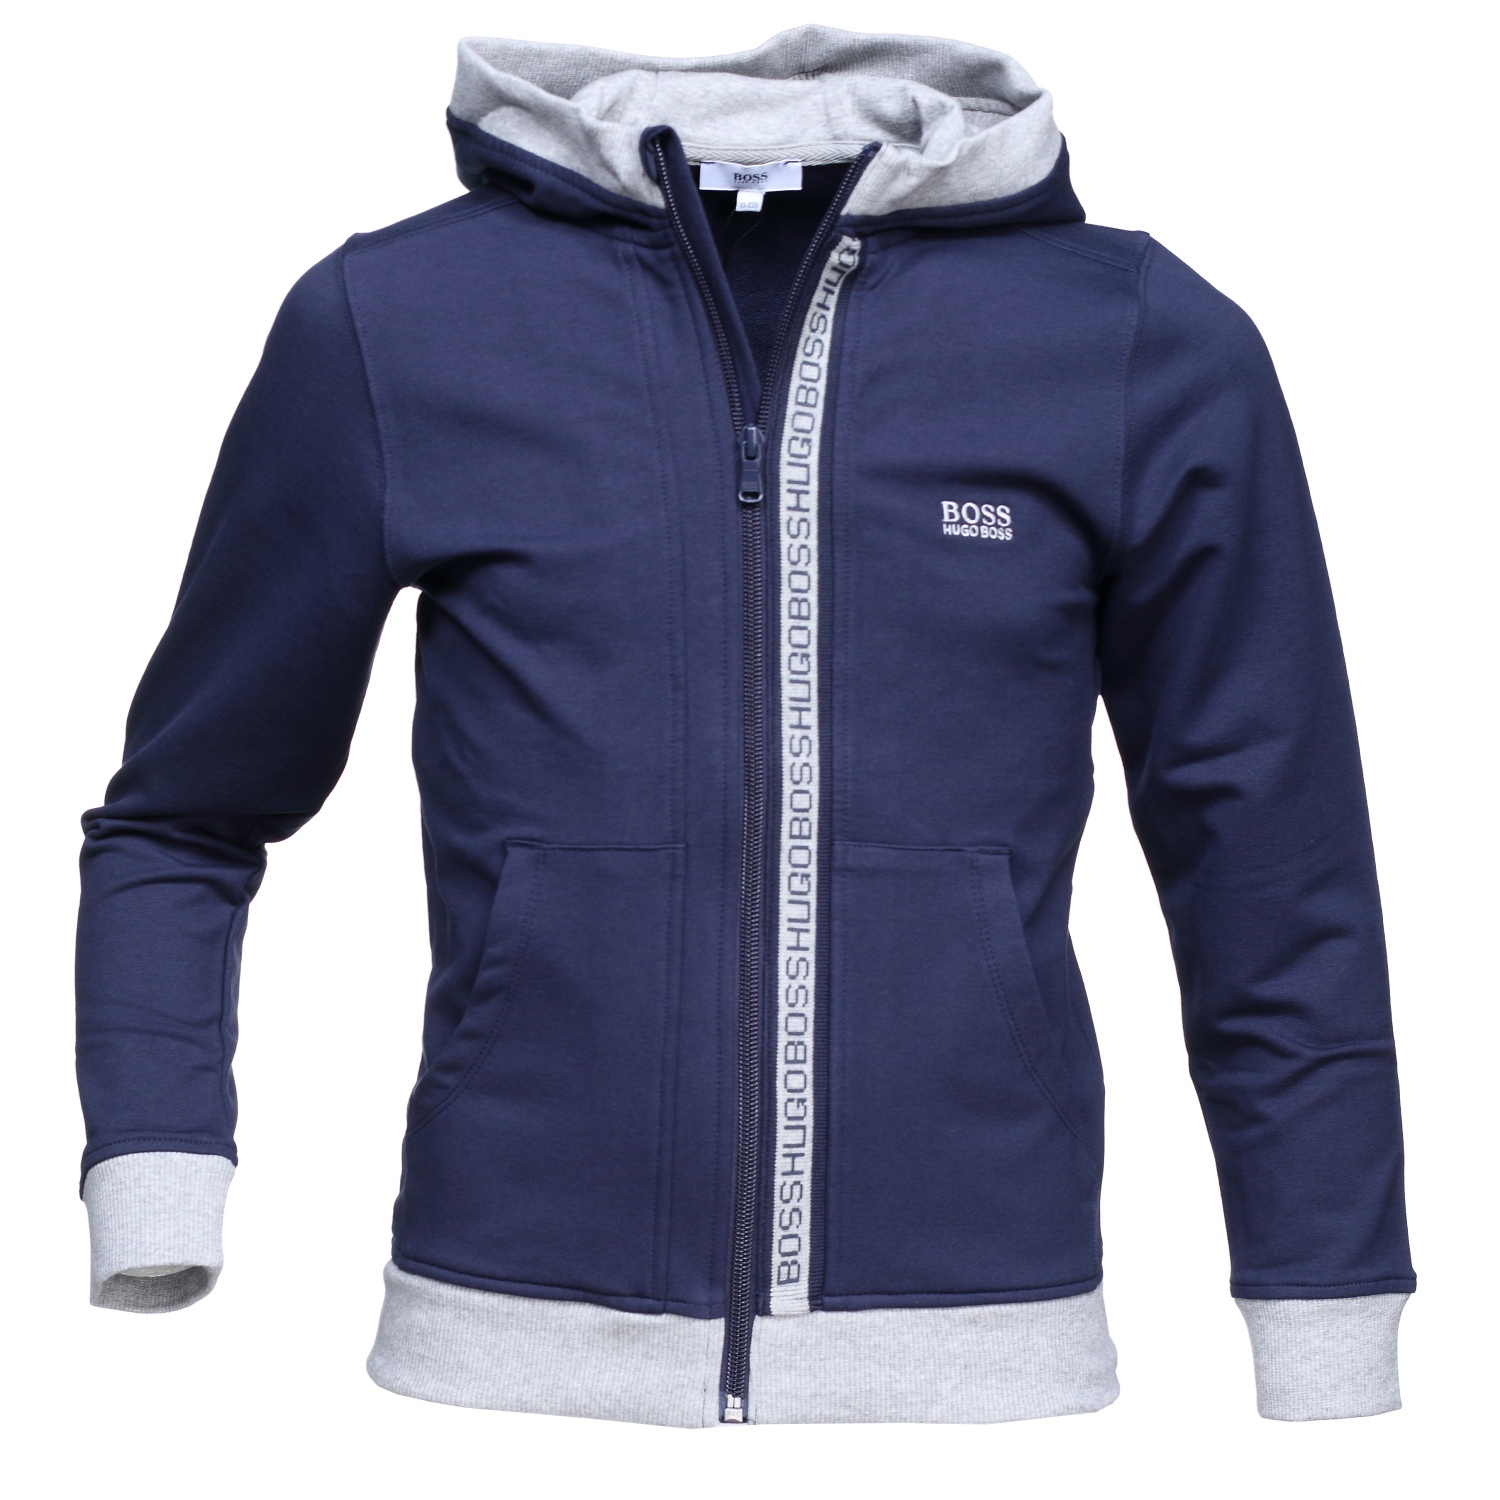 http://www.leadermode.com/122609/hugo-boss-j25p02-849-navy.jpg